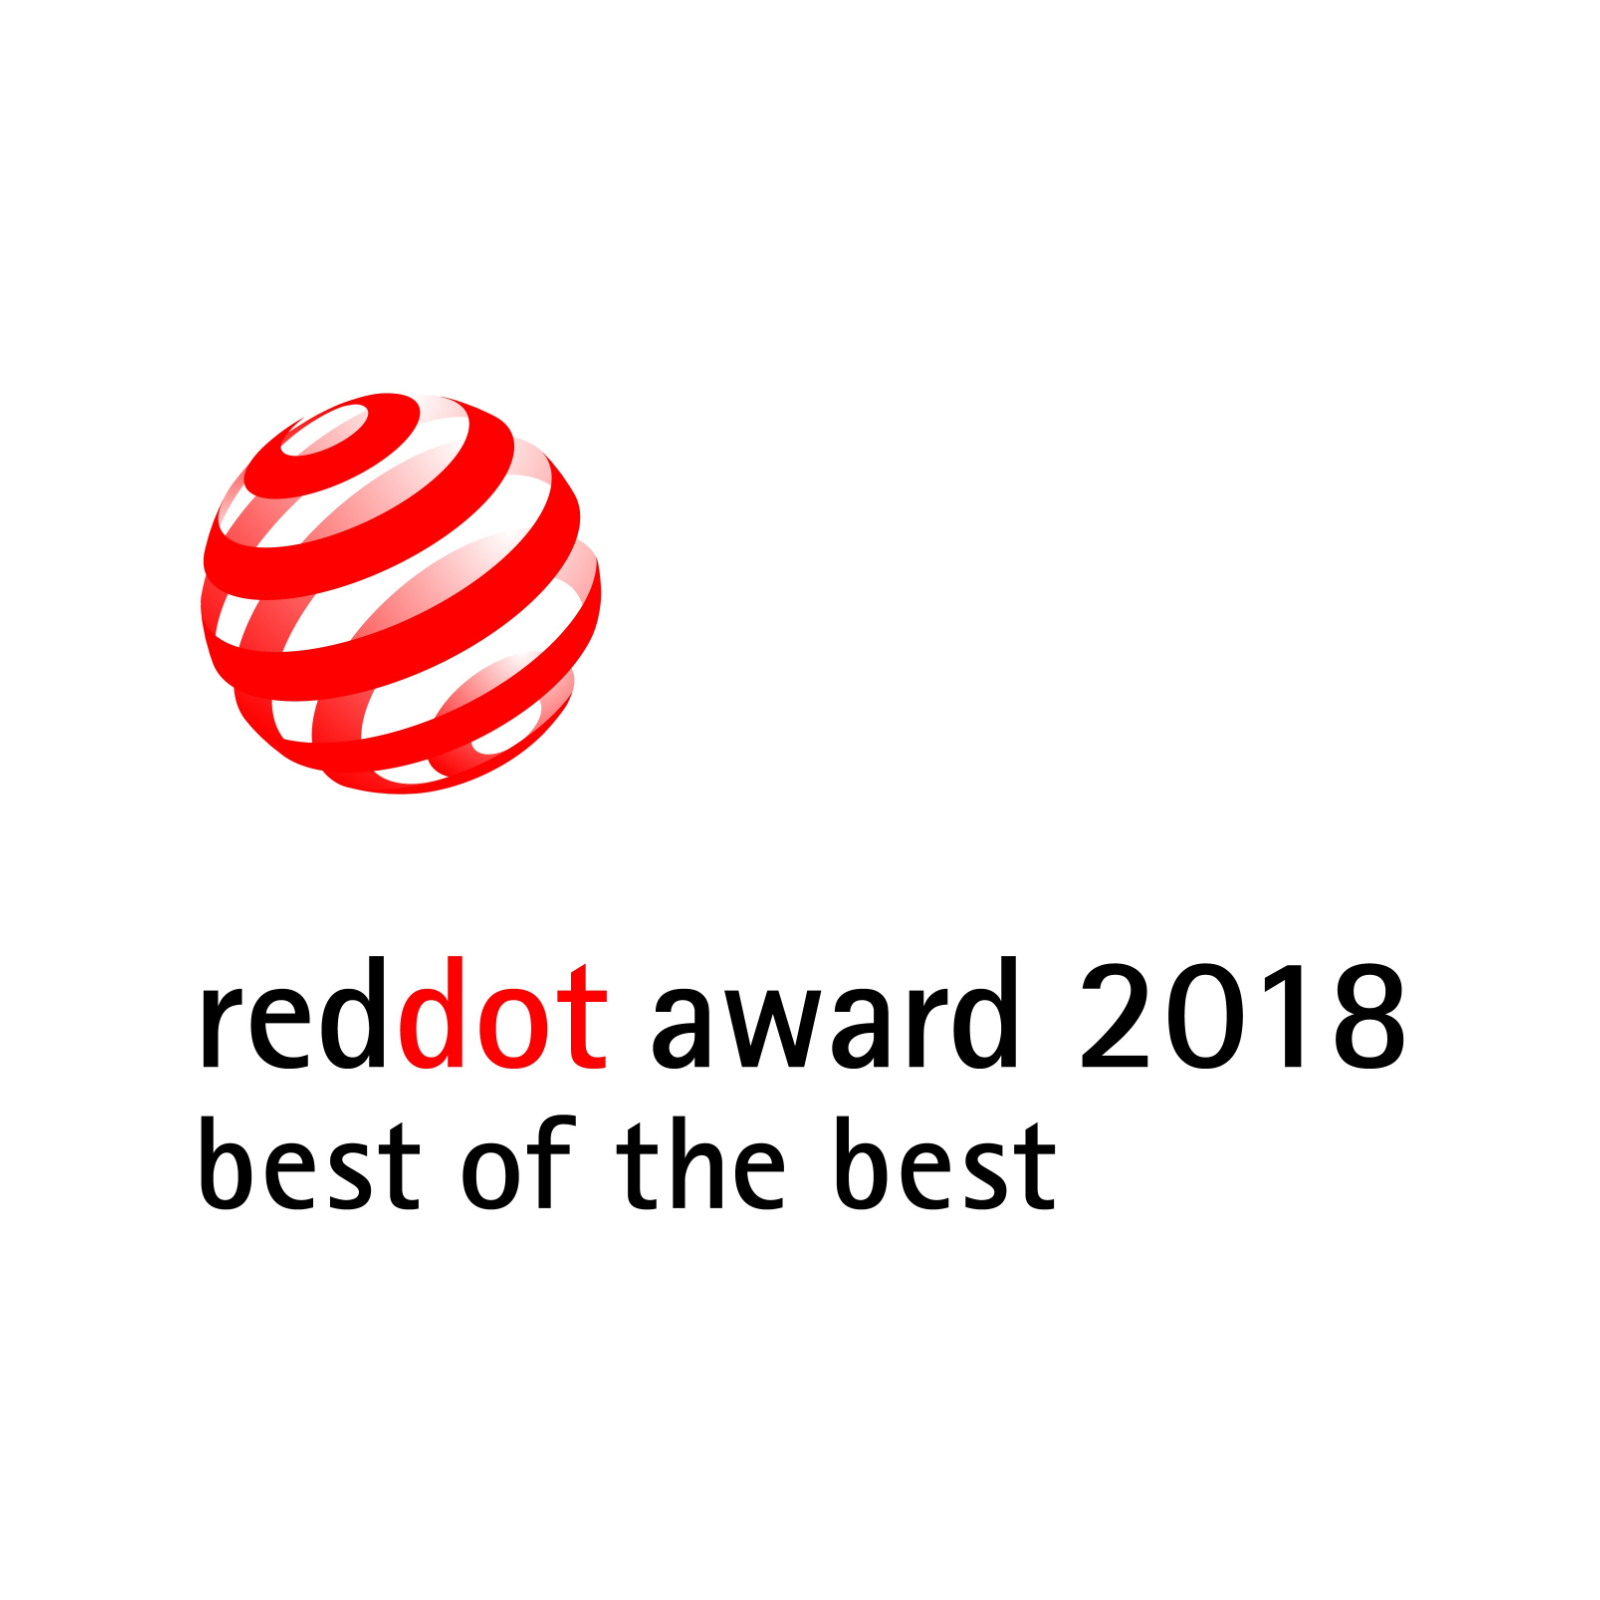 reddot award 2018 - best of the best